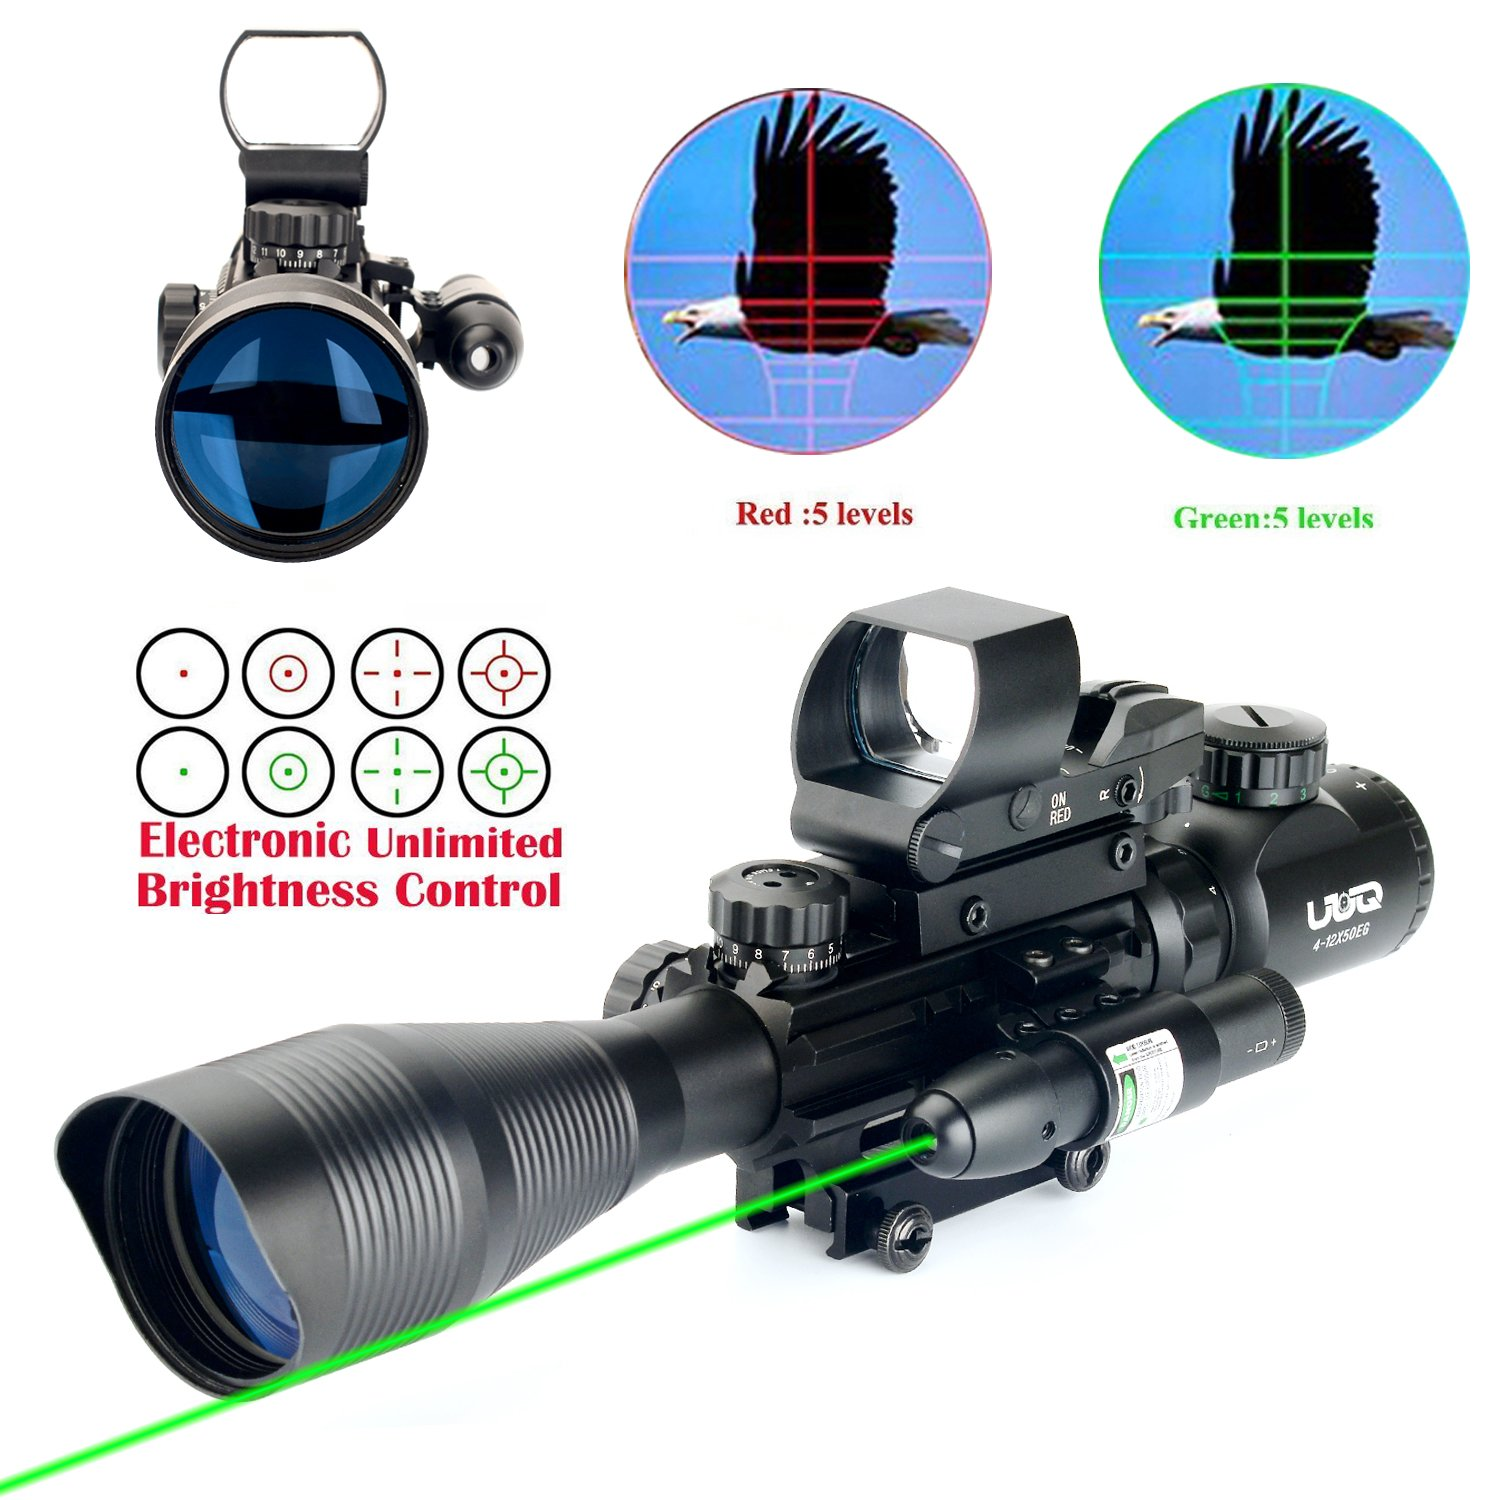 UUQ C4-12X50 AR15 Rifle Scope Dual Illuminated Reticle W/ GREEN(RED) Laser Sight and 4 Tactical Holographic Dot Reflex Sight (12 Month Warranty) (Green Laser W/ New Dot Sight)